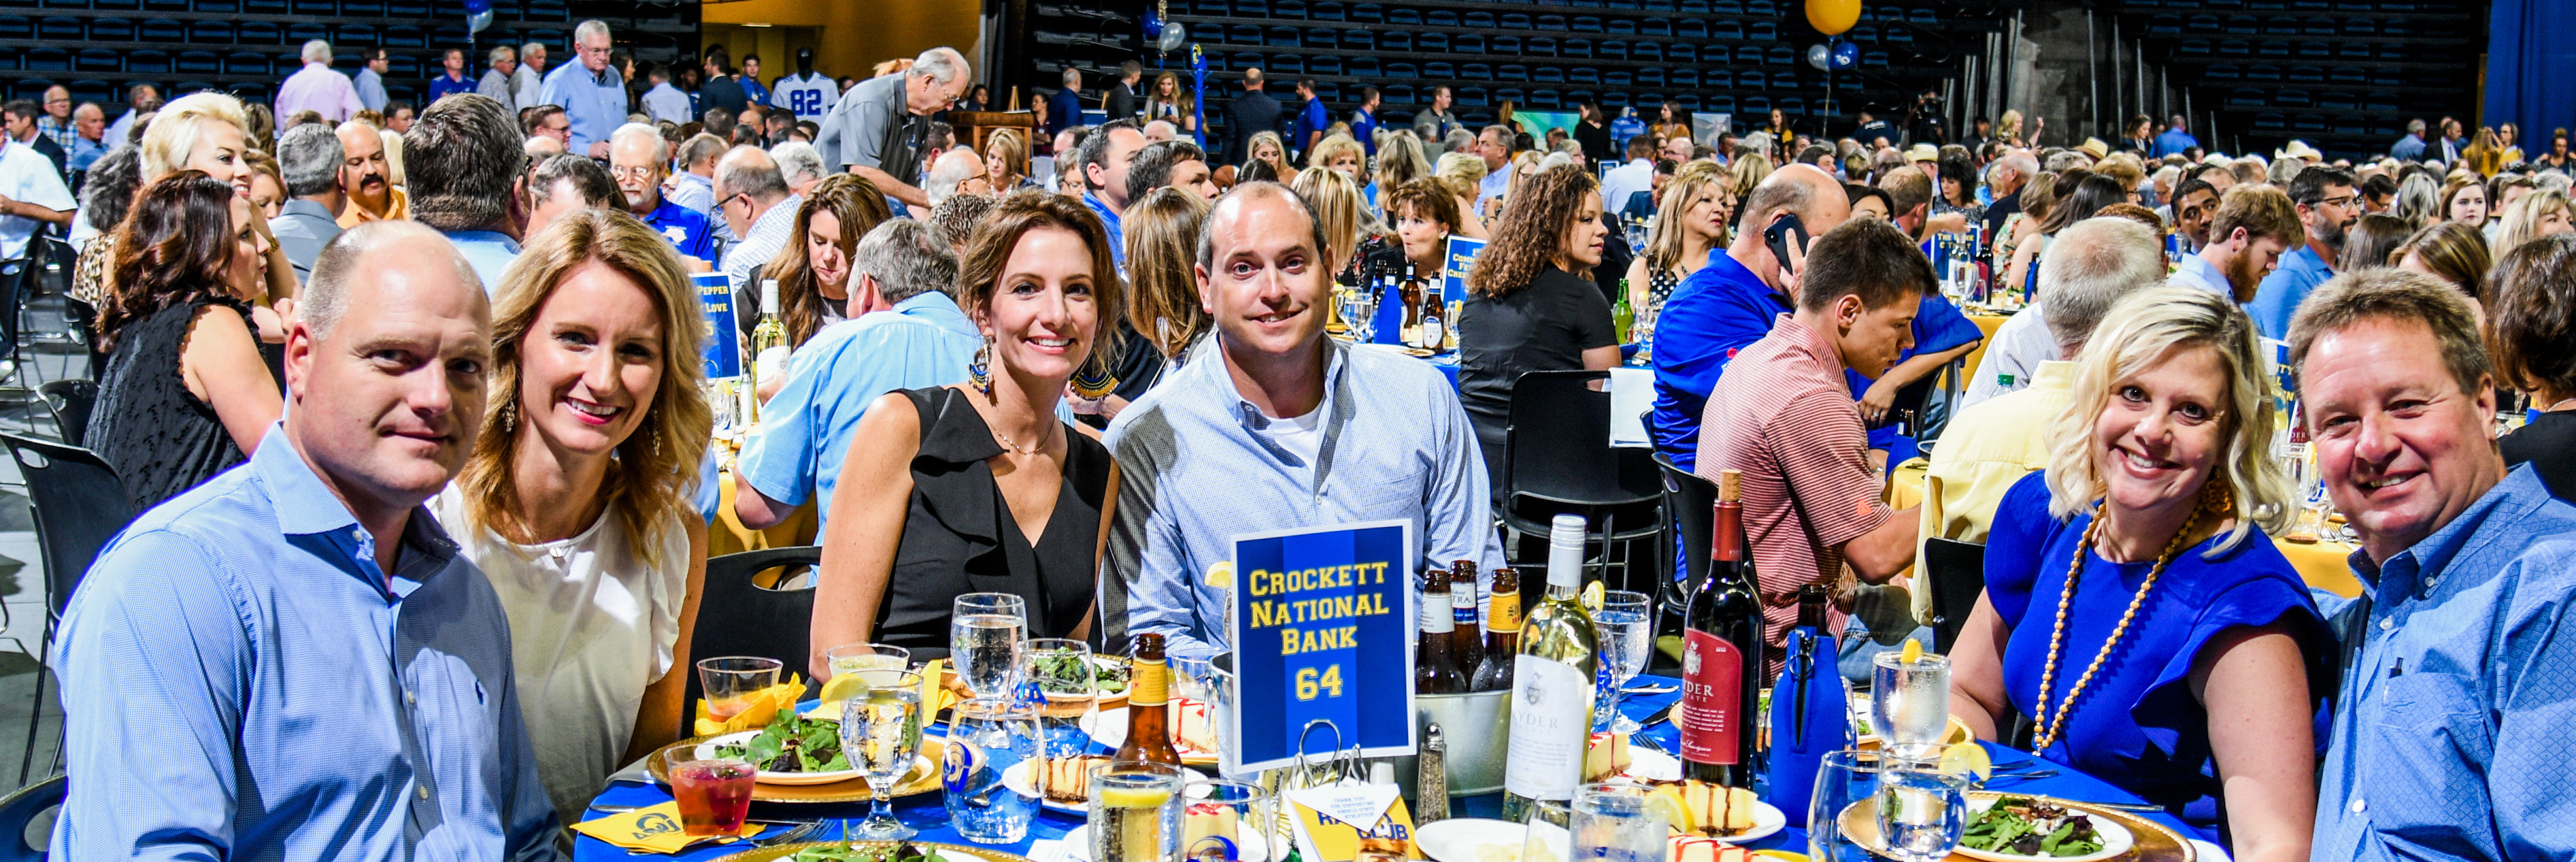 Member of Crocket National Bank sitting at table at Blue and Gold Auction